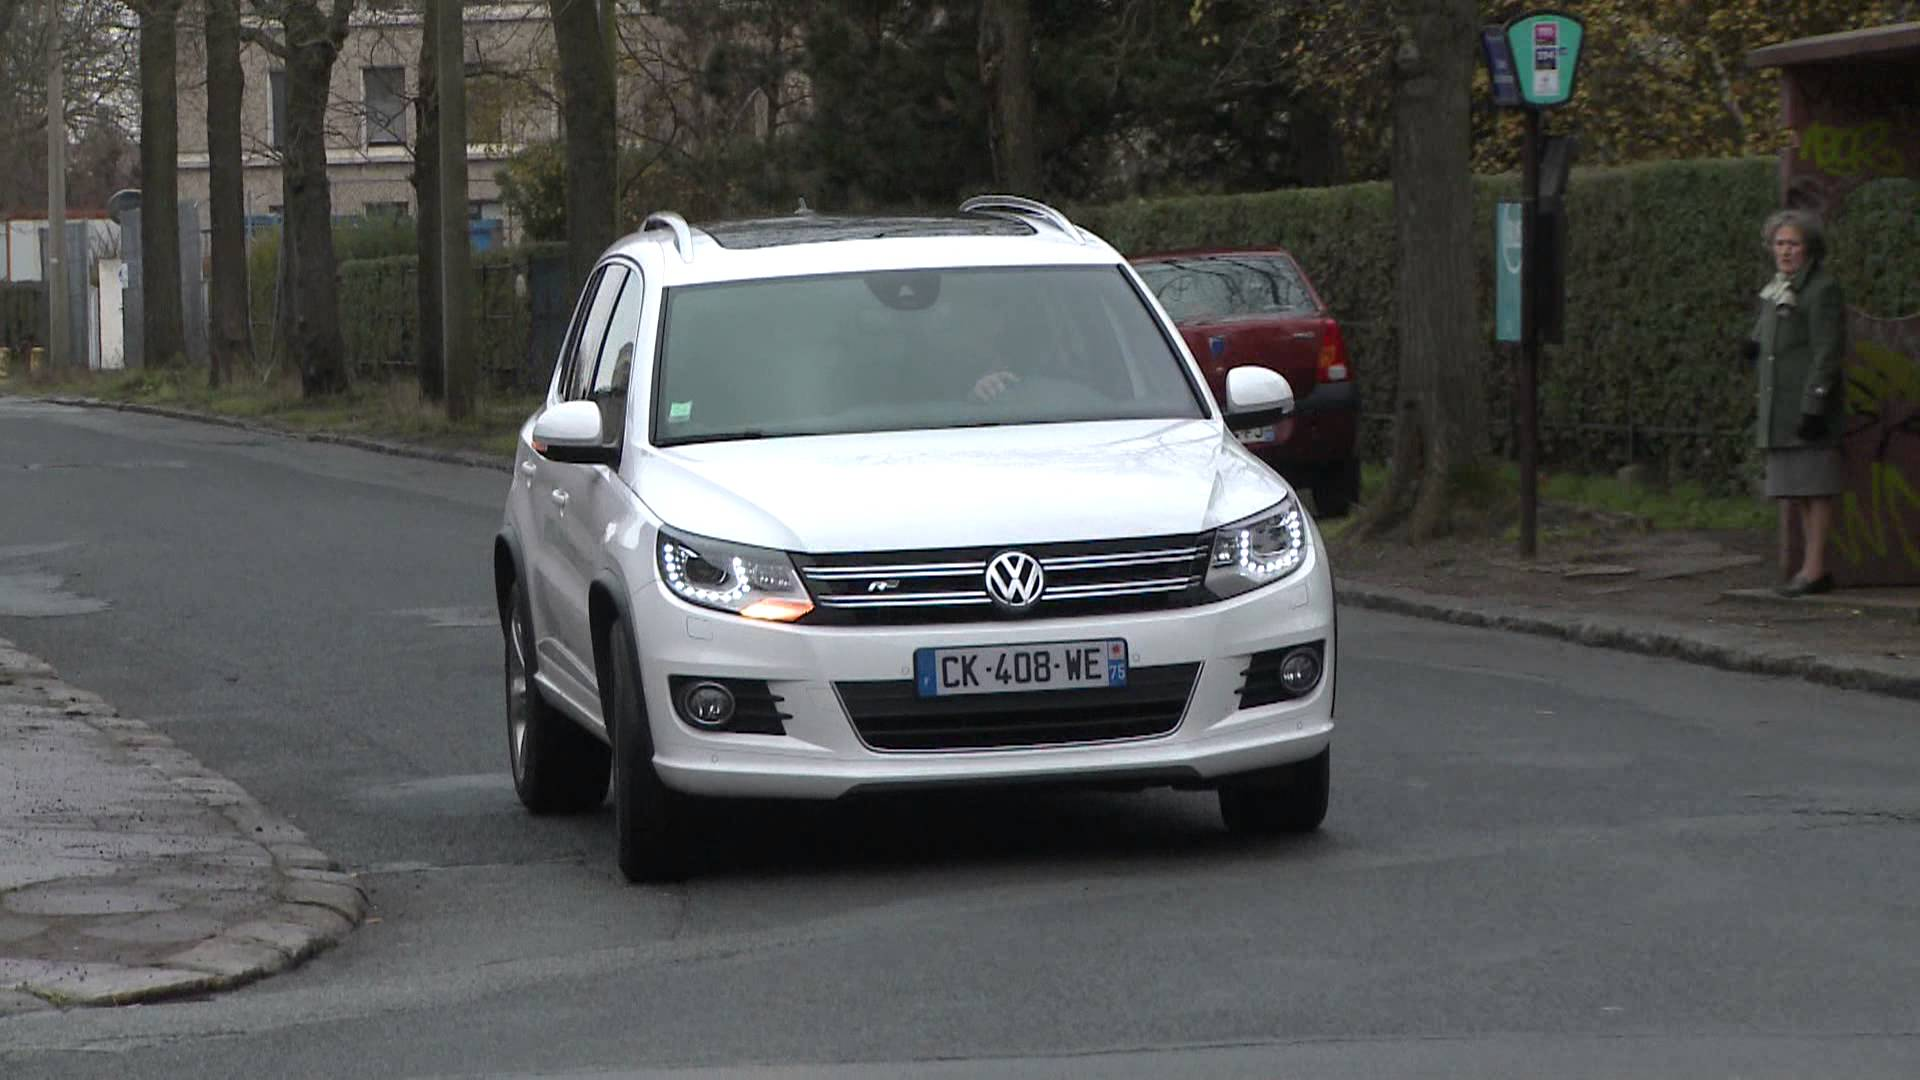 Volkswagen Tiguan 2.0 2012 photo - 4